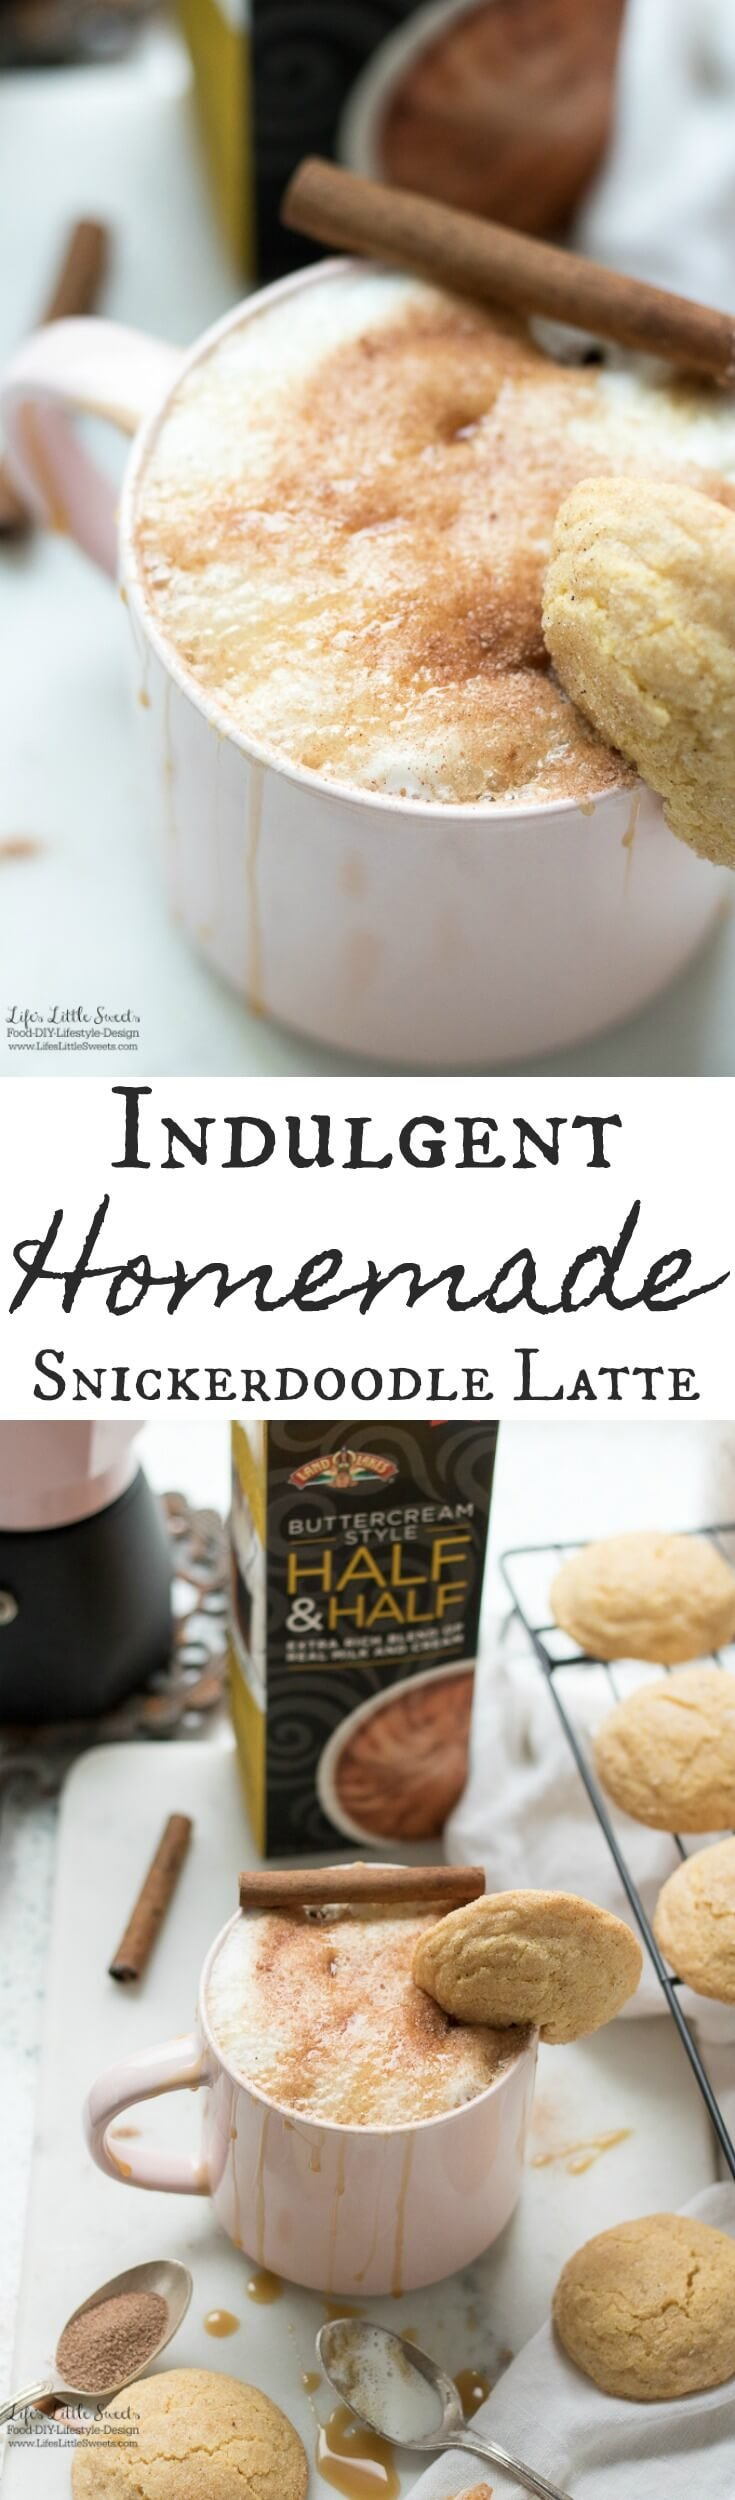 This Indulgent Homemade Snickerdoodle Latte is an indulgent hot, coffee drink made with espresso or coffee and topped with extra creamy & rich New Land O Lakes® Buttercream Style Half & Half. You can garnish with a cocoa cinnamon-sugar mixture, cinnamon sticks and a drizzle of caramel sauce.